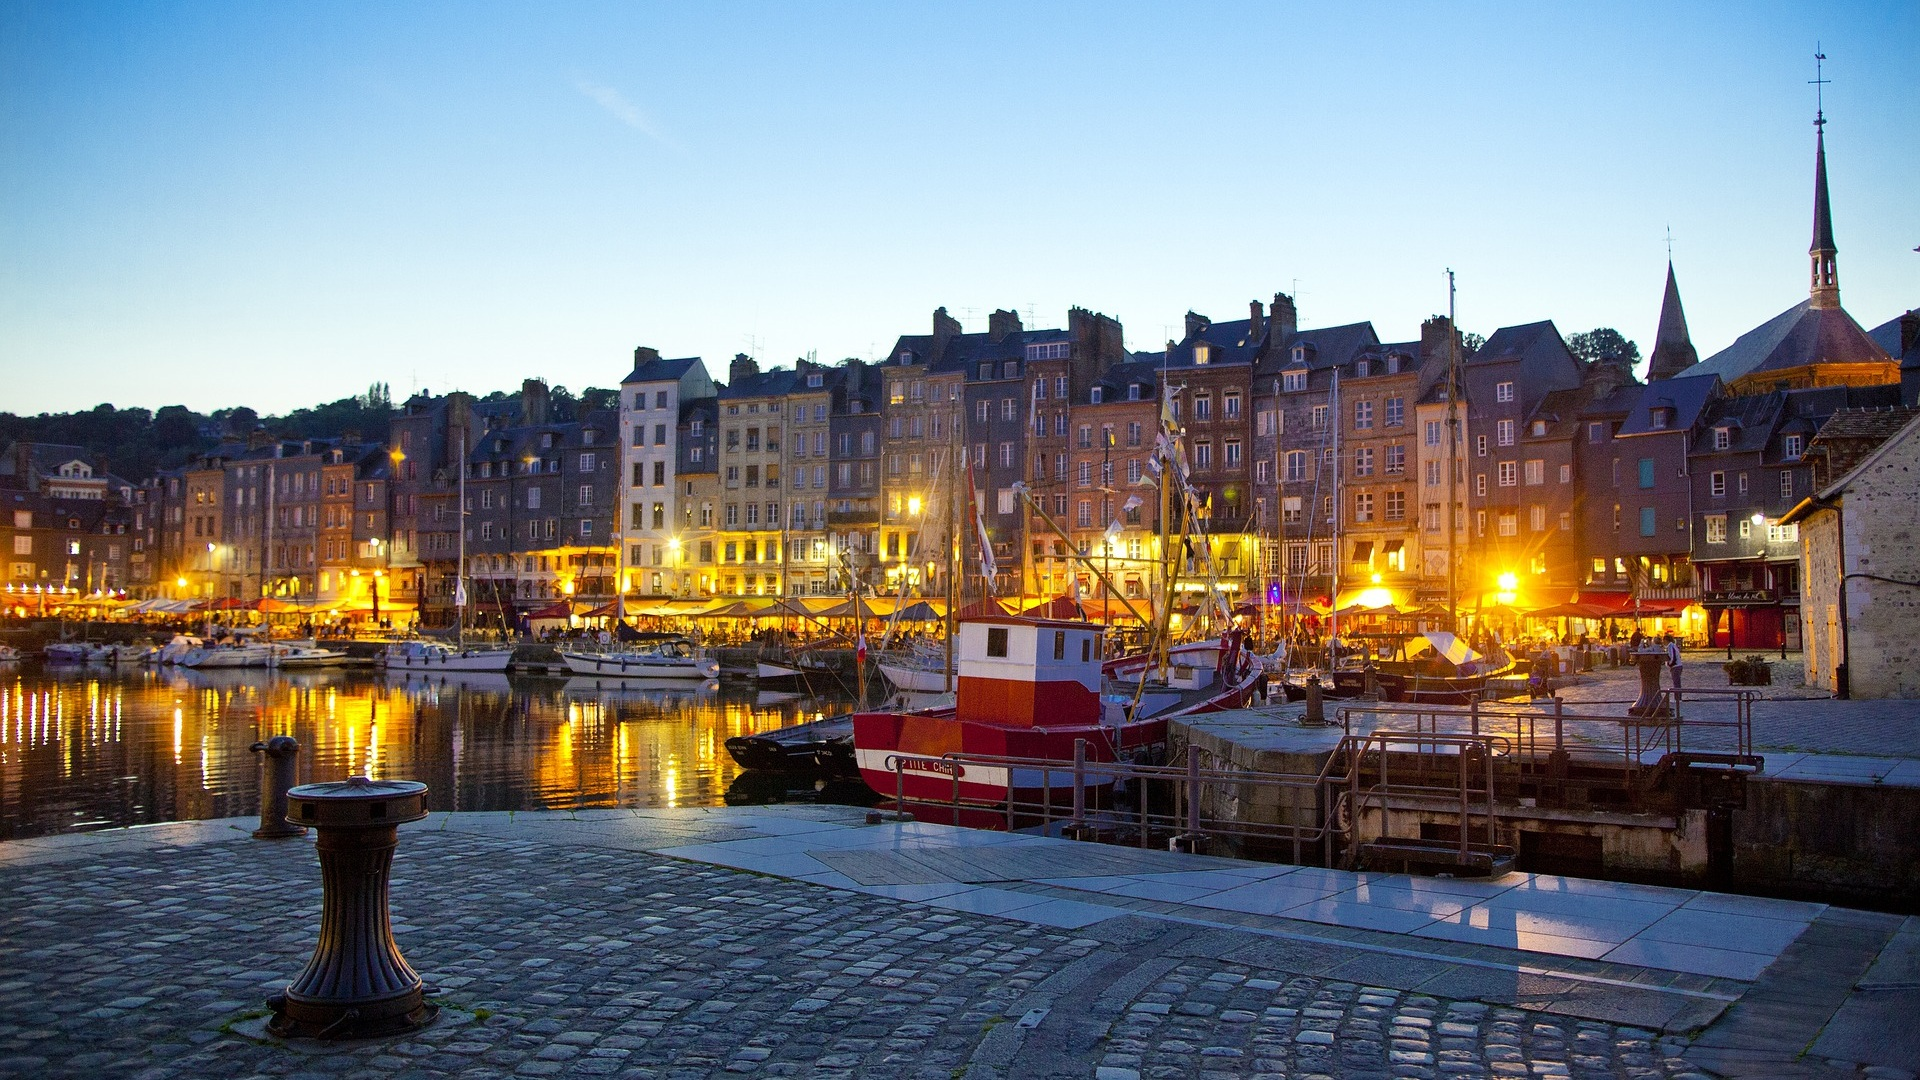 Waterfront - Honfleur, France